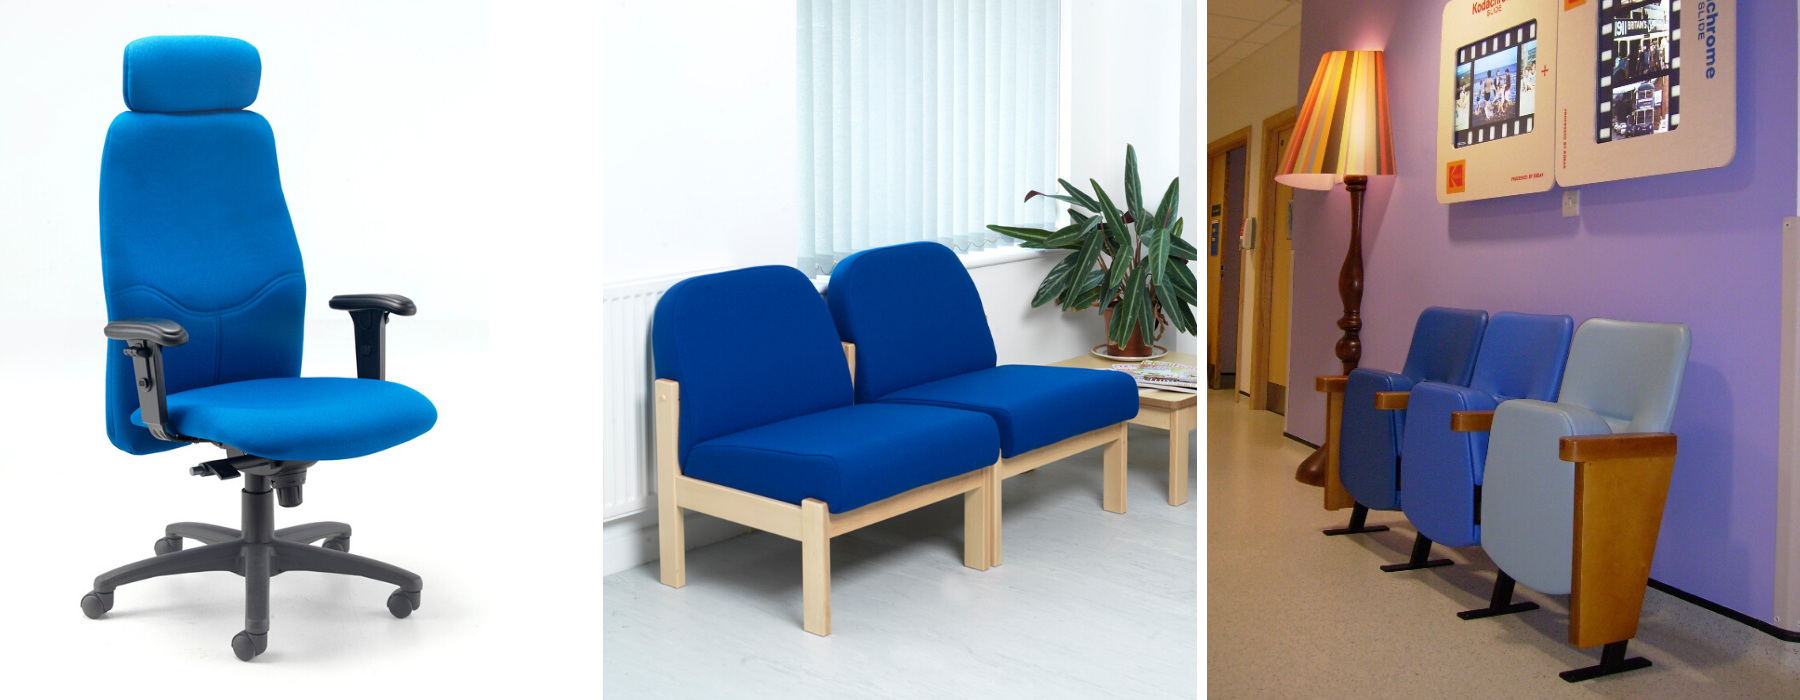 Office chair and waiting room chairs upholstered in blue fabrics and vinyl